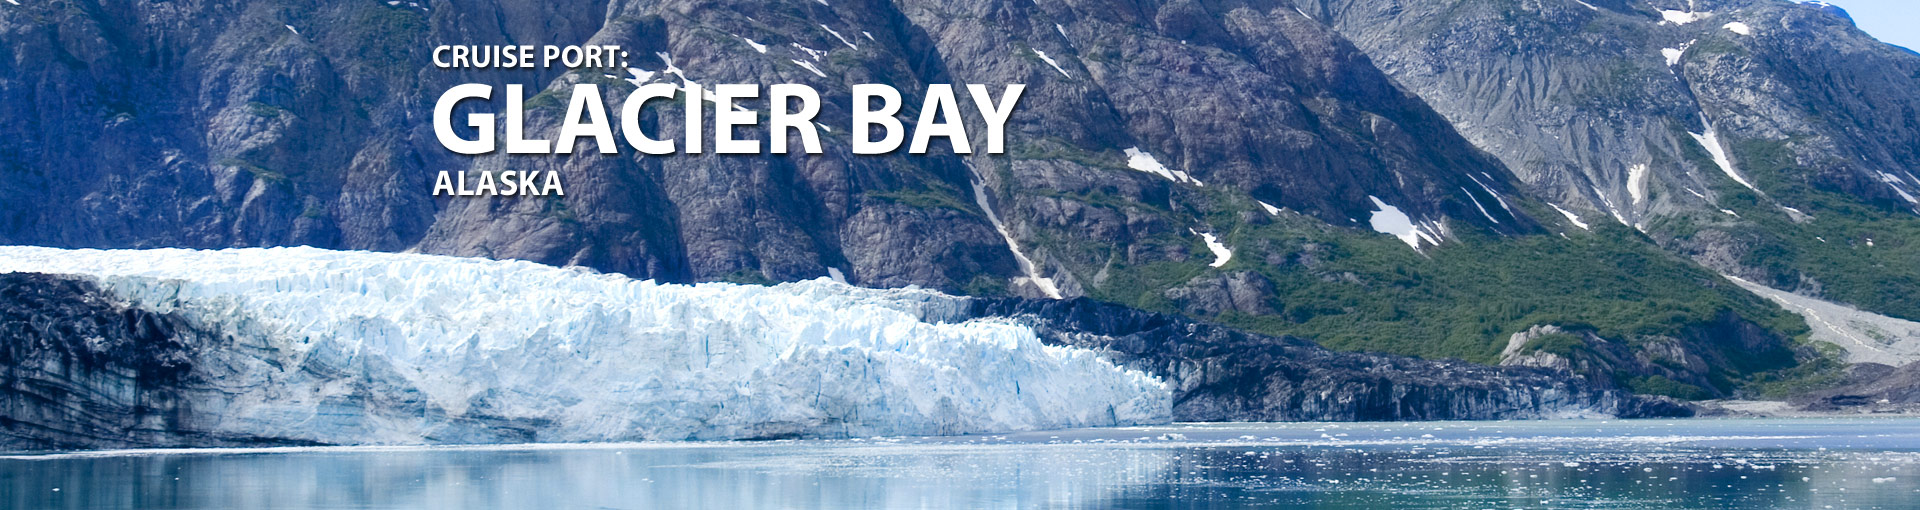 Cruise Port: Glacier Bay, Alaska